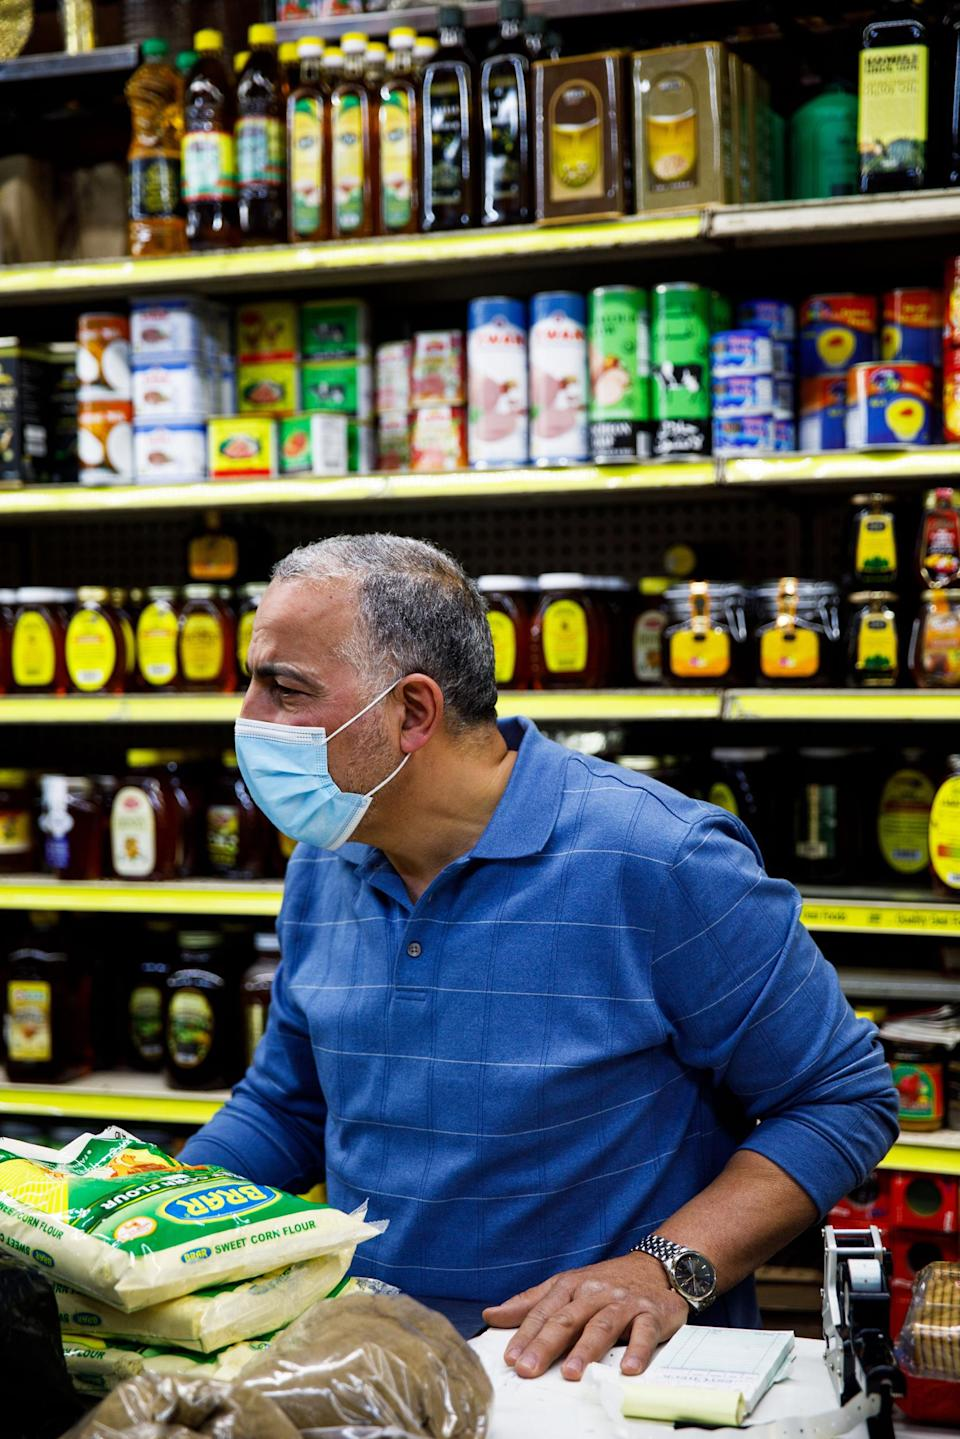 Hamed Nabawy Hamed talks with a customer at his halal grocery store Fertile Crescent in Brooklyn, N.Y., on May 5, 2021. (Julius Constantine Motal / NBC News)